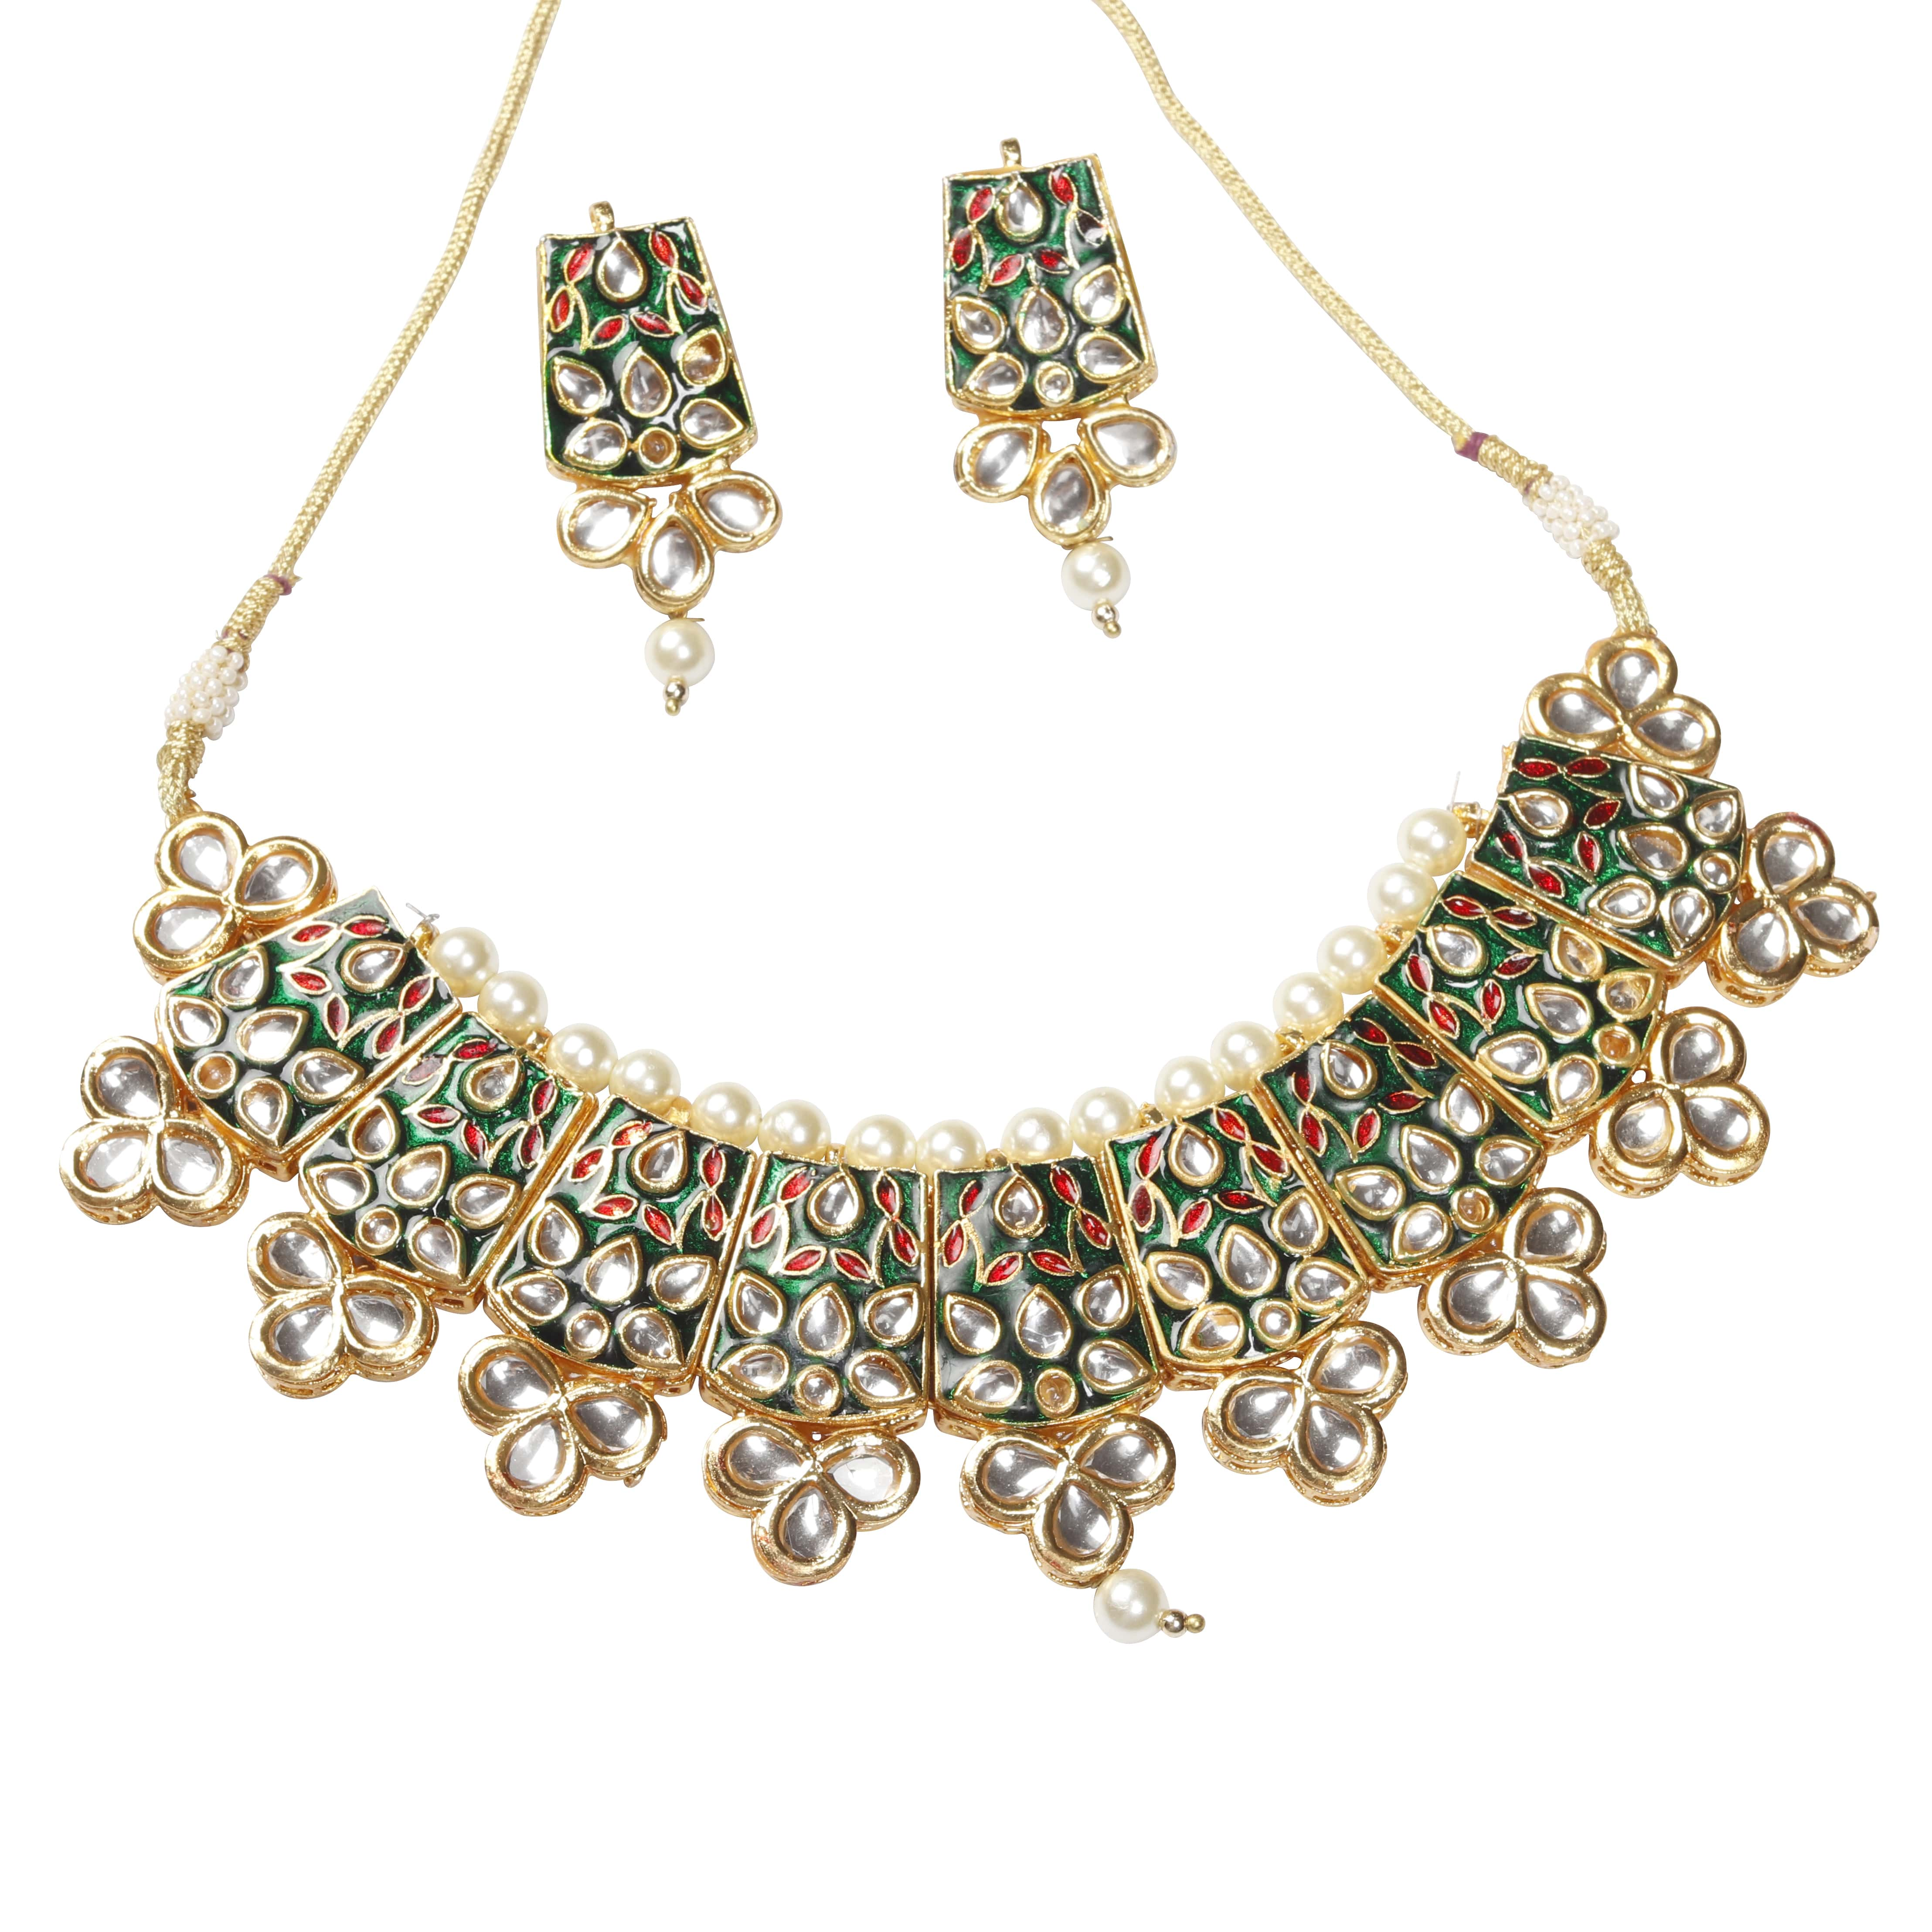 GREEN KUNDAN TRADITIONAL NECKLACE